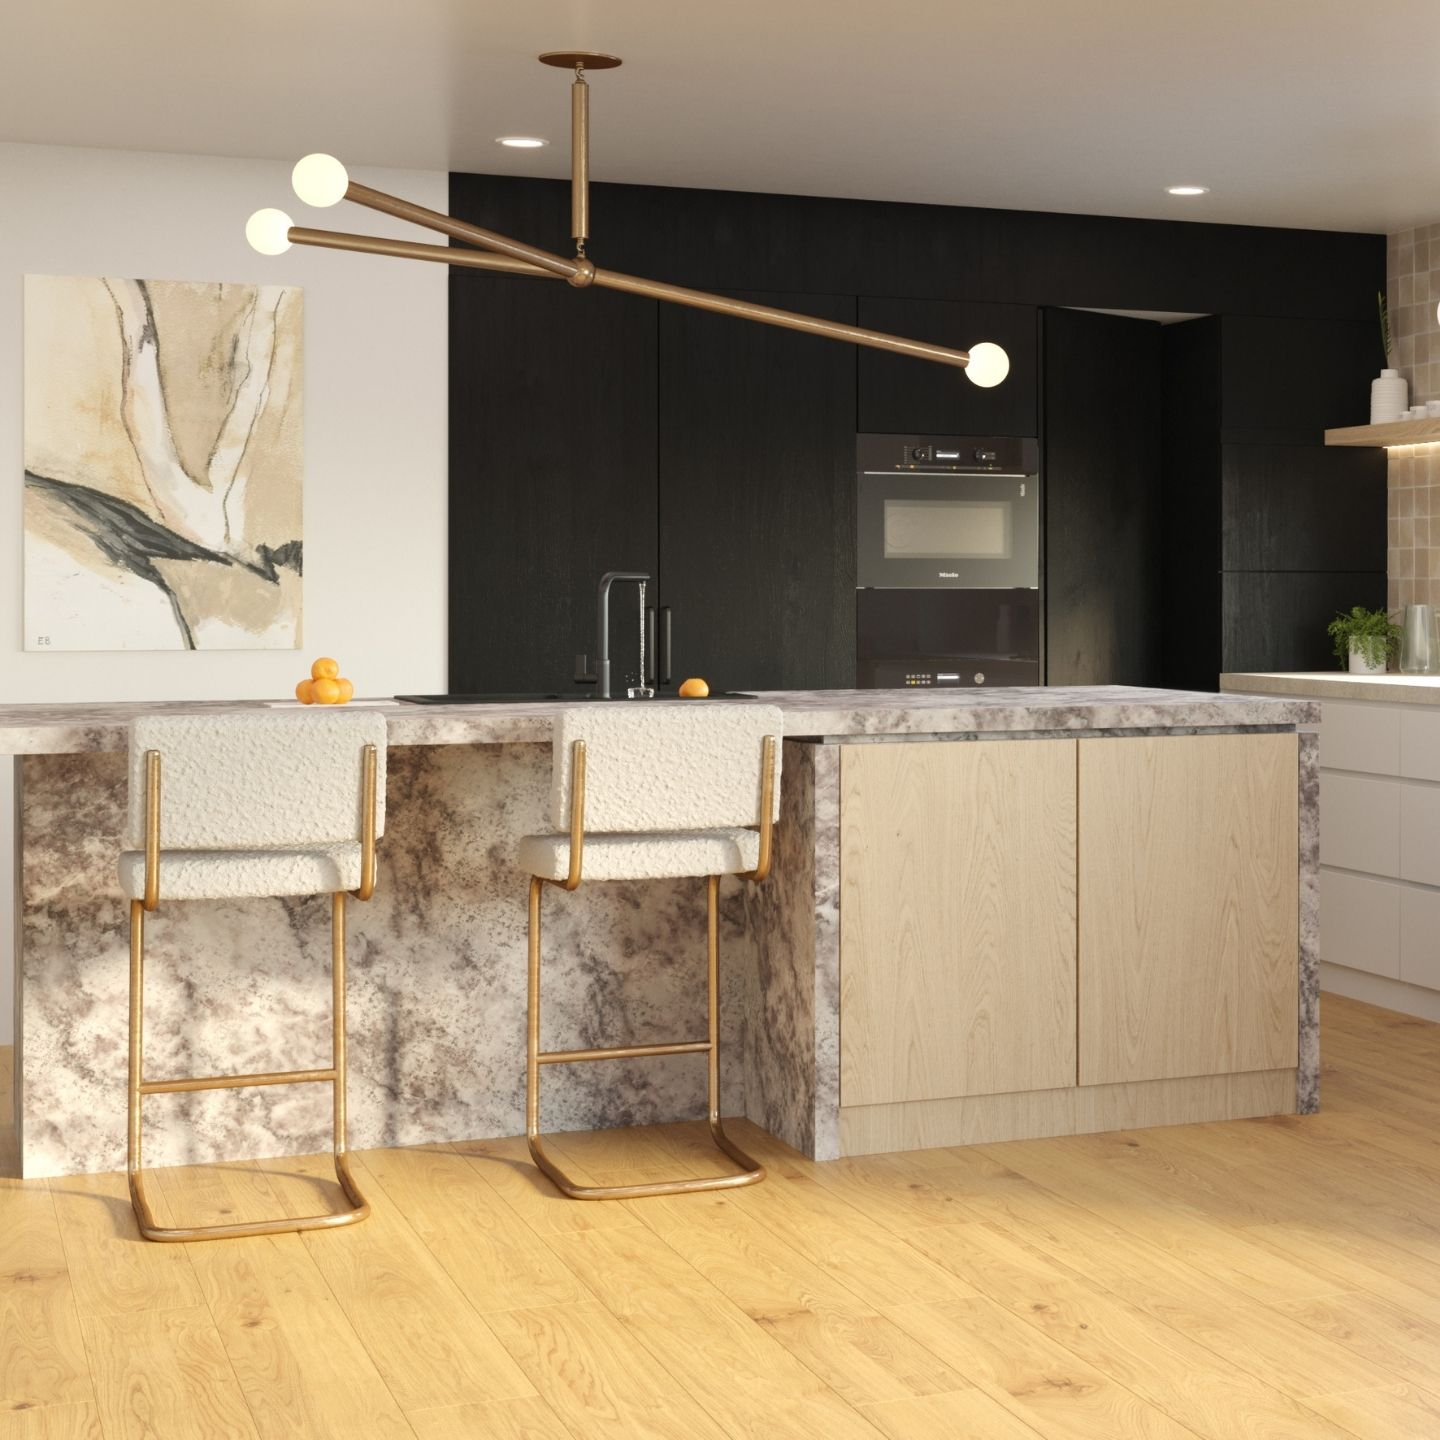 Brown Home Project Details And Design 3